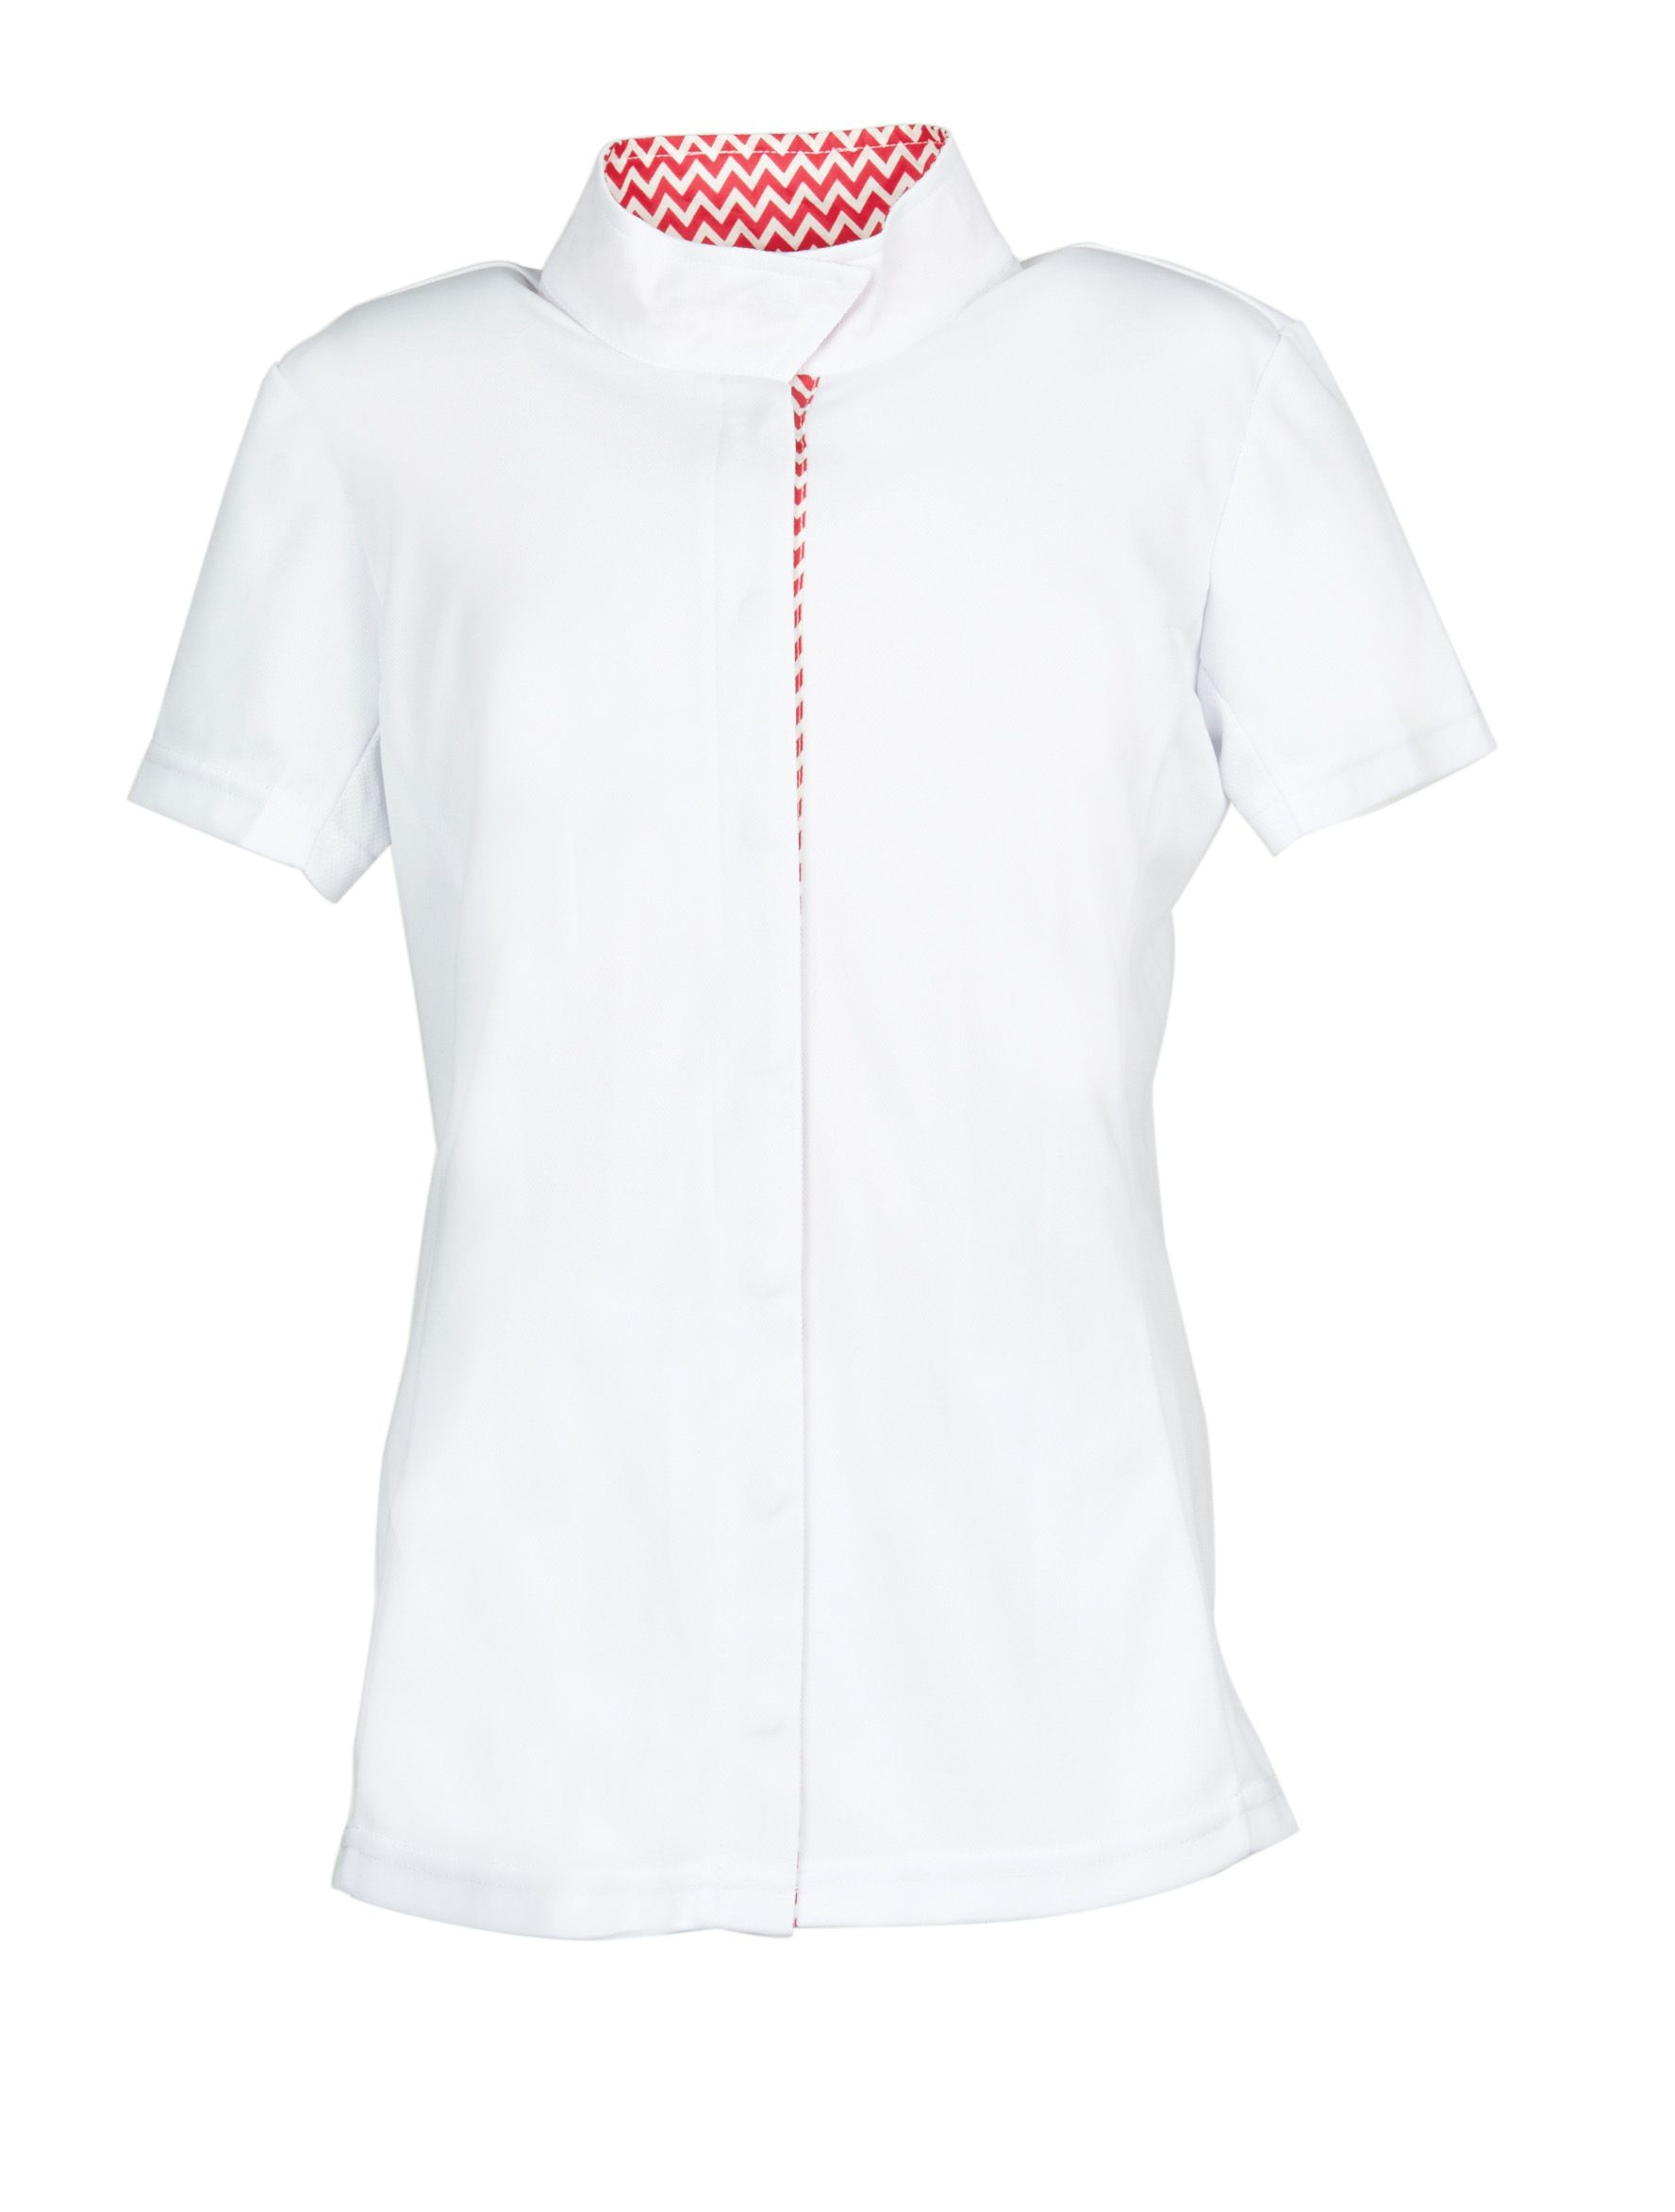 Dublin Comfort Dry Show Shirt - Kids, Short Sleeves